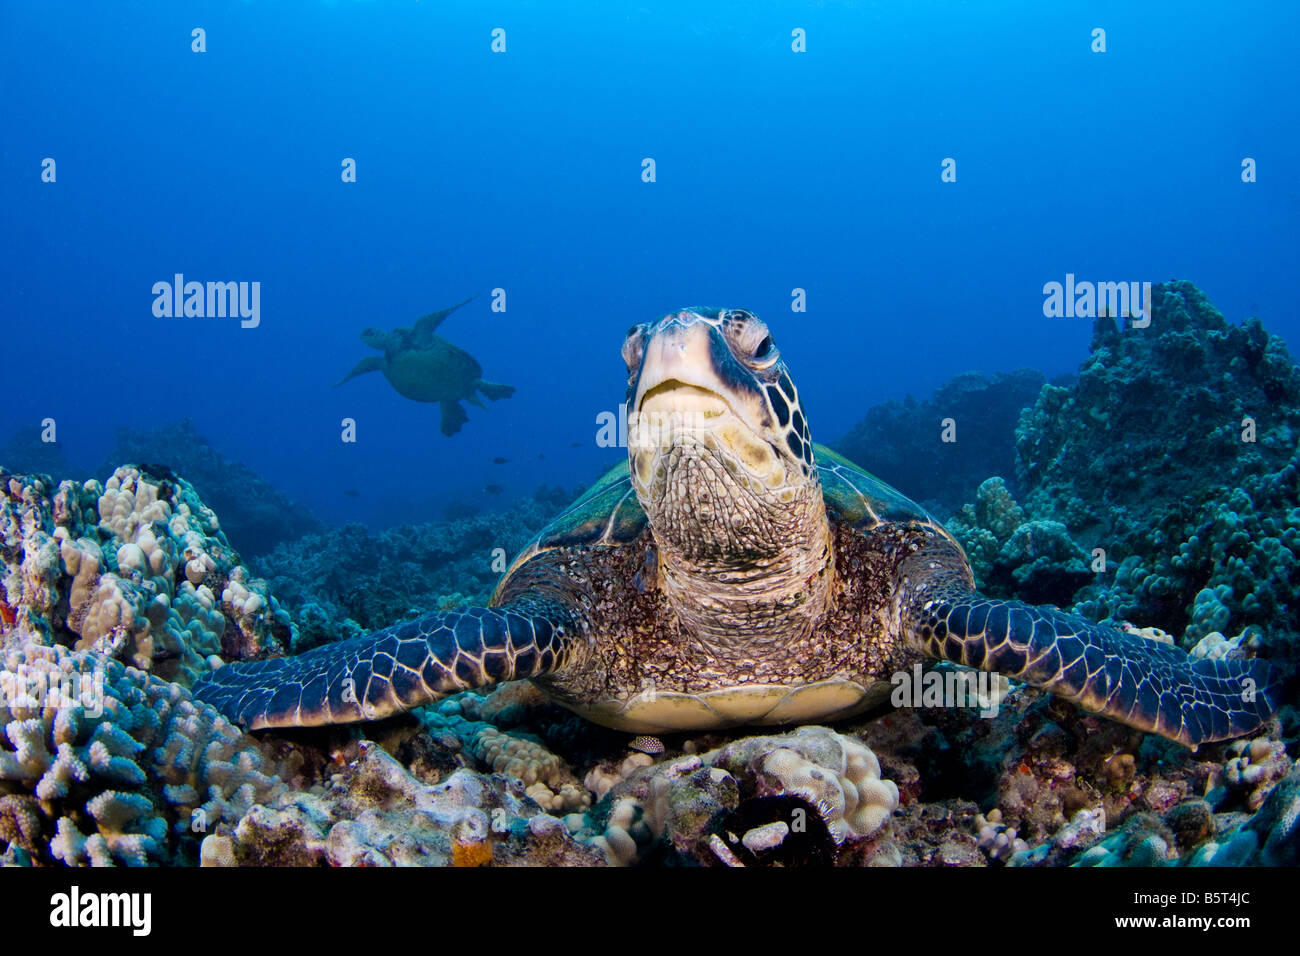 Green sea turtles, Chelonia mydas, an endangered species, Hawaii. - Stock Image